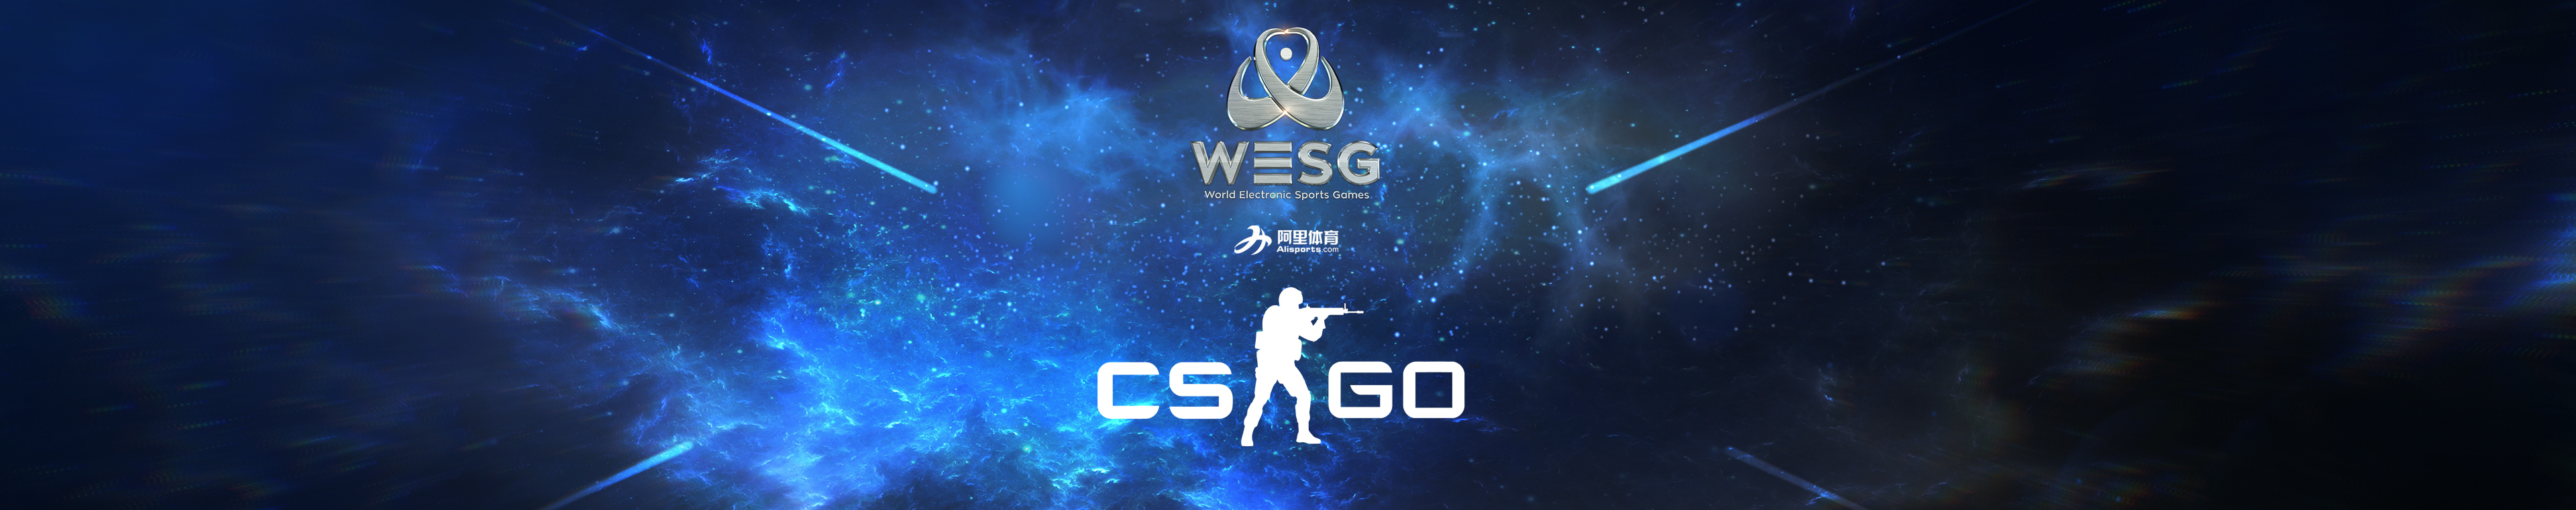 WESG 2018-2019 Ukraine Qualifiers: CS:GO